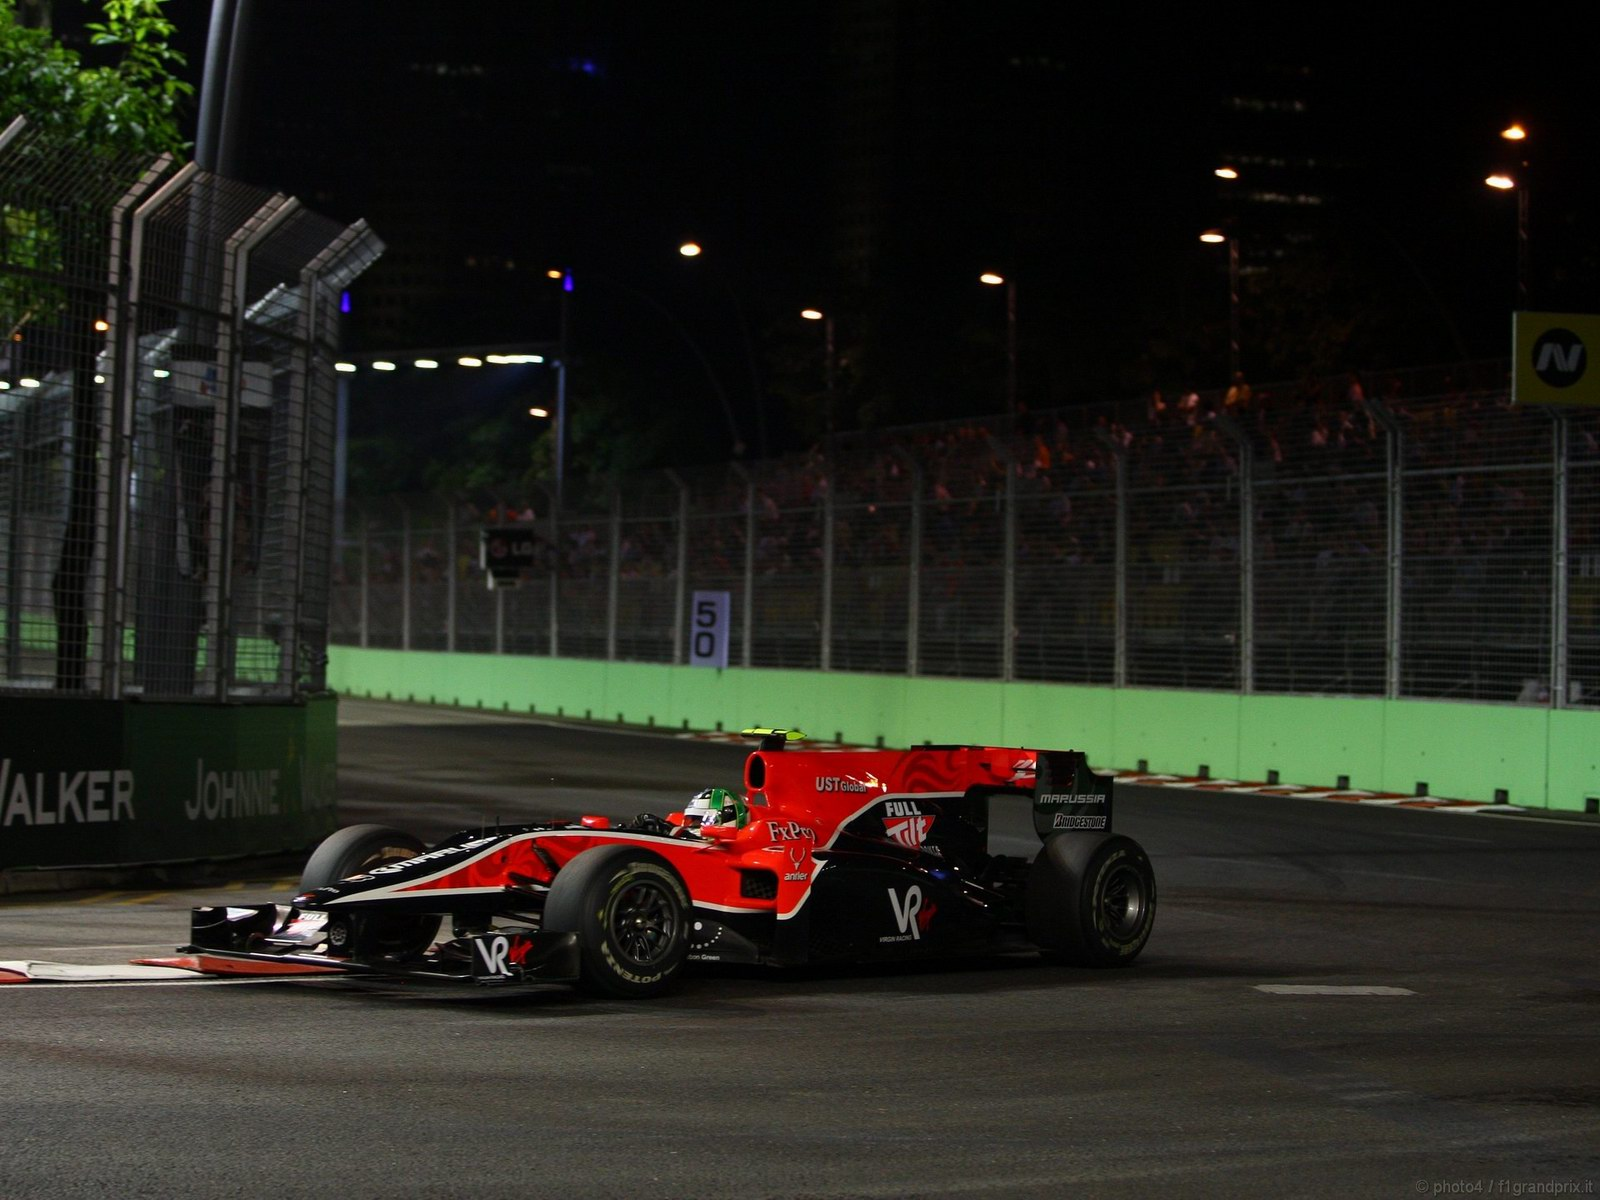 pojazdy - formula1 - gp_singapore_wallpapers_000042